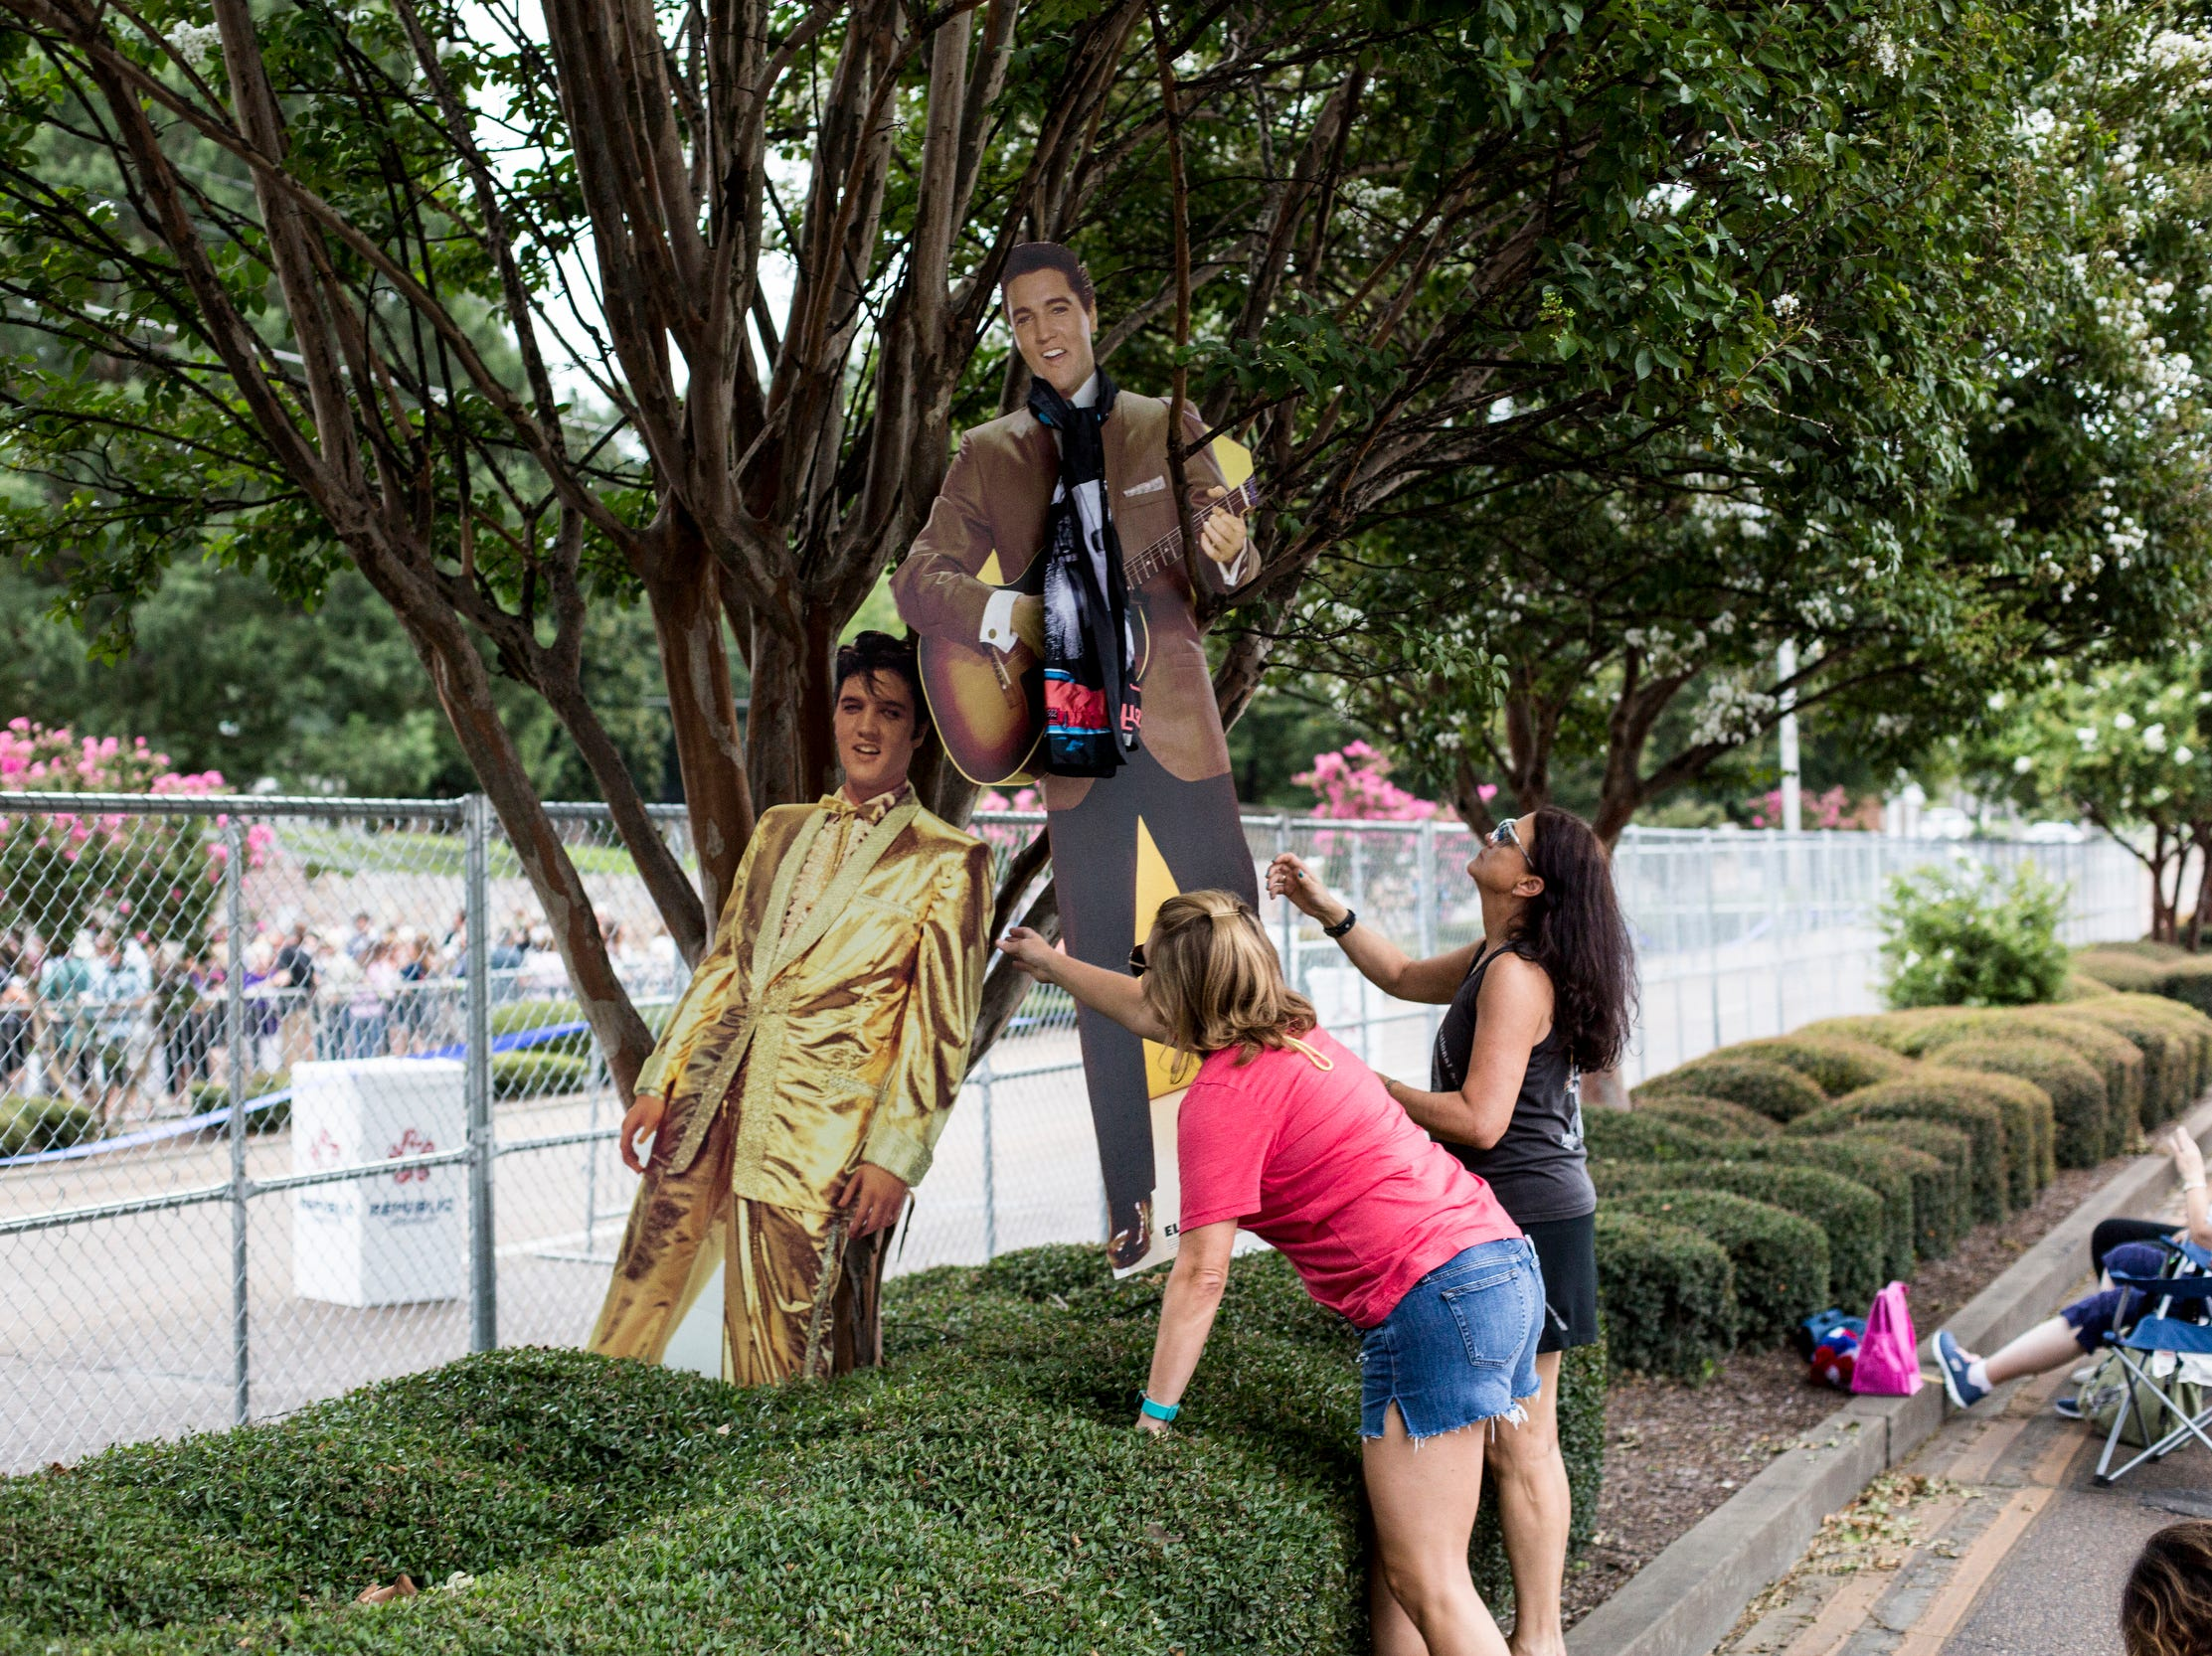 August 14, 2018 - Breland Fischer, left, and Vicky Prince, right, work to keep cardboard cutouts of Elvis standing during the 41st anniversary of Presley's Aug. 16 death.